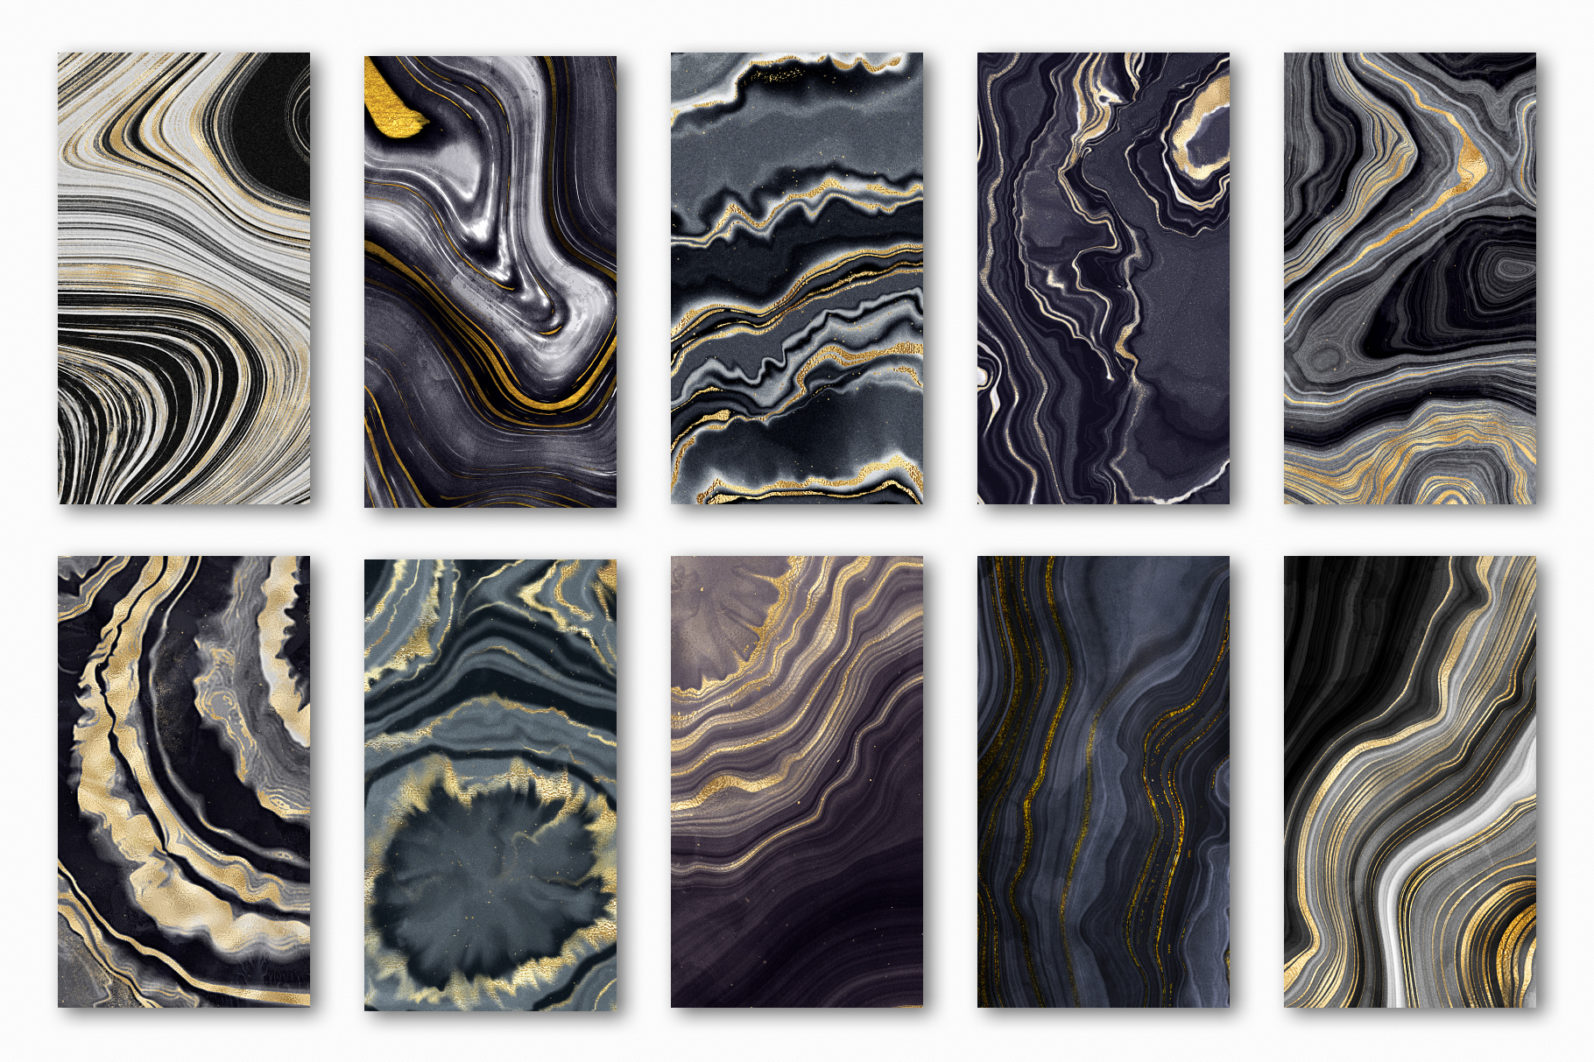 10 Agate Stone Digital Papers - Gold Veined Geode Textures - 02 agate digital papers -